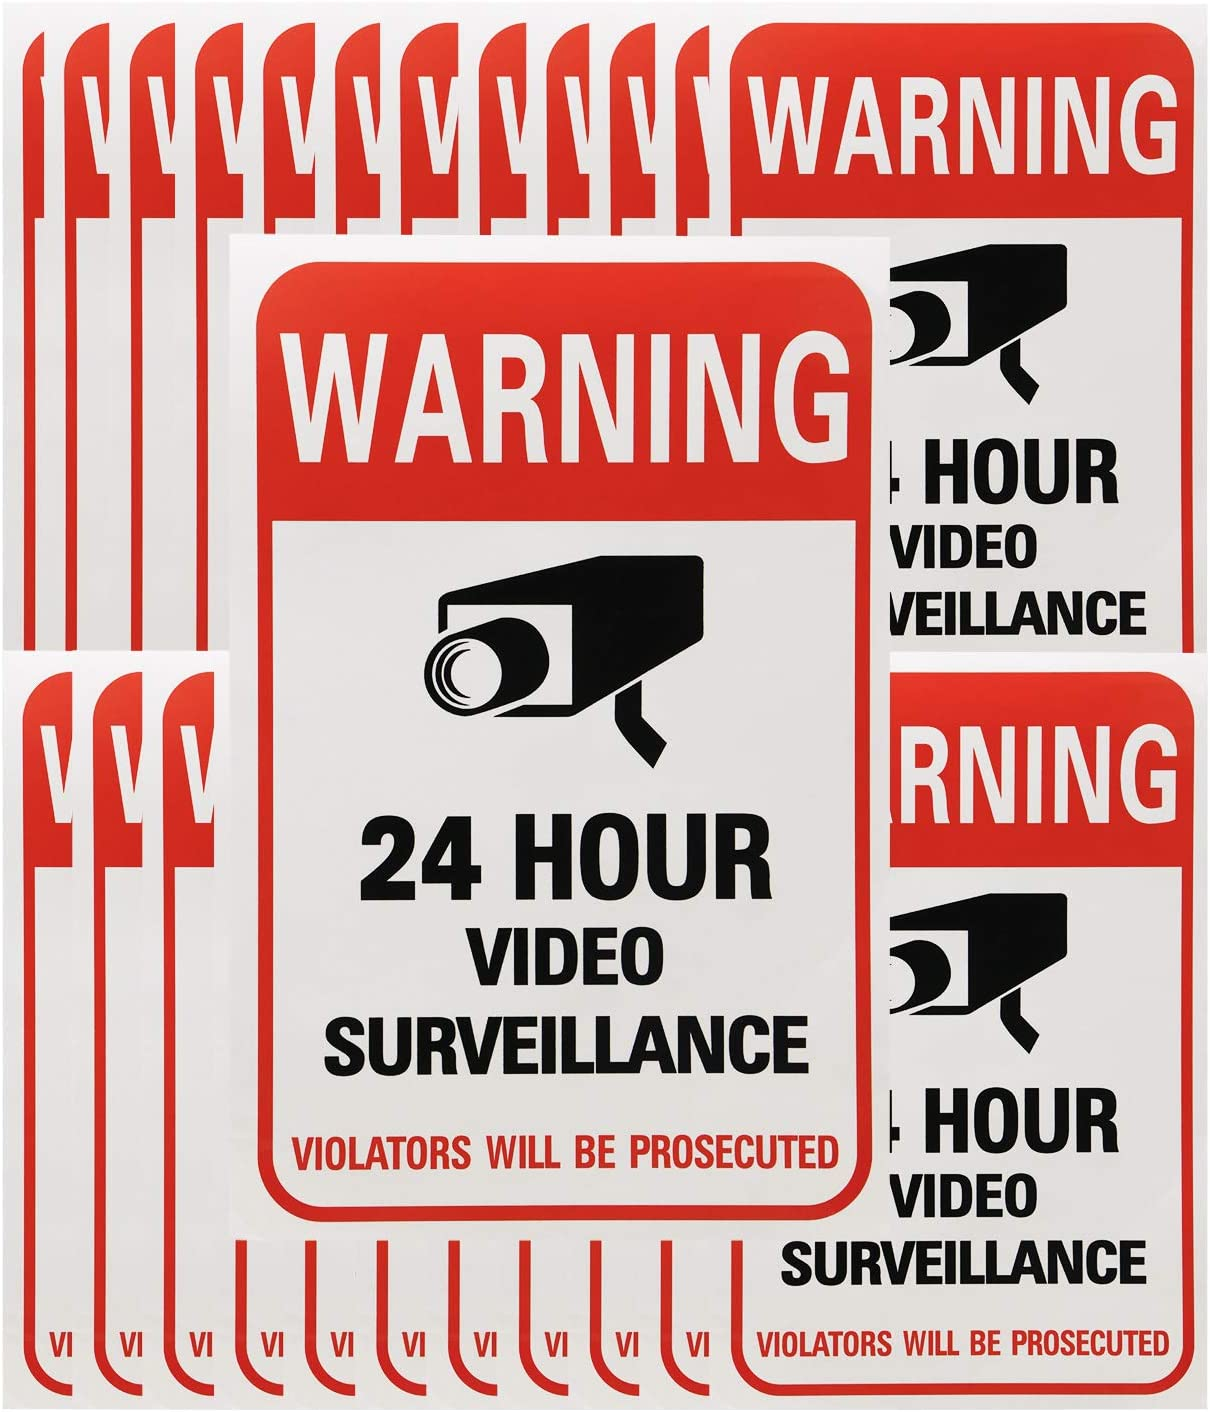 Tupalizy 24 Hours Video Camera Surveillance Sign Stickers Decals Self-Adhesive Home Business Alarm System Security Warning Stickers for Window Wall Door, 4 x 6 Inch, 20PCS